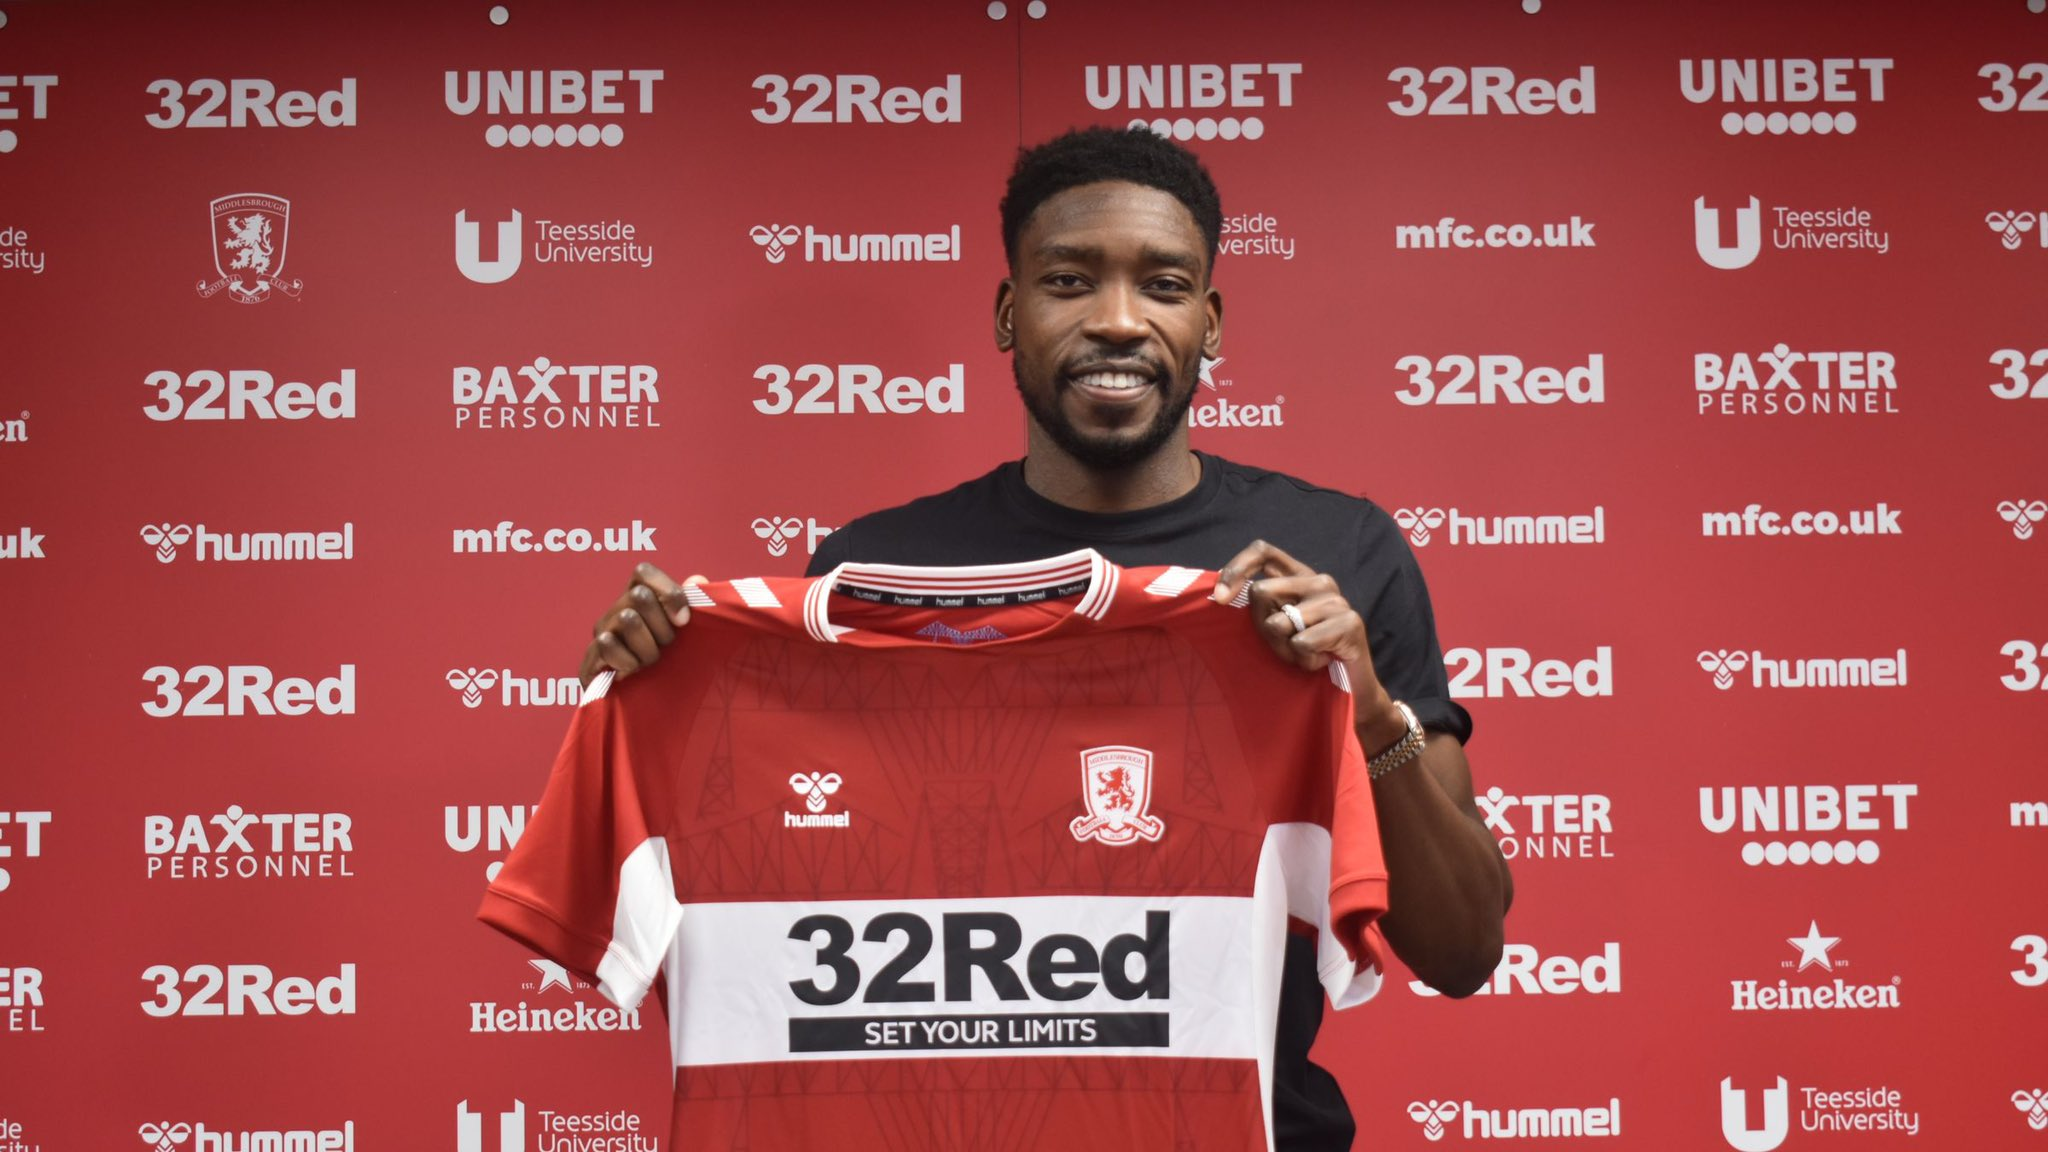 OFFICIAL: Sammy Ameobi Moves To Middlesbrough